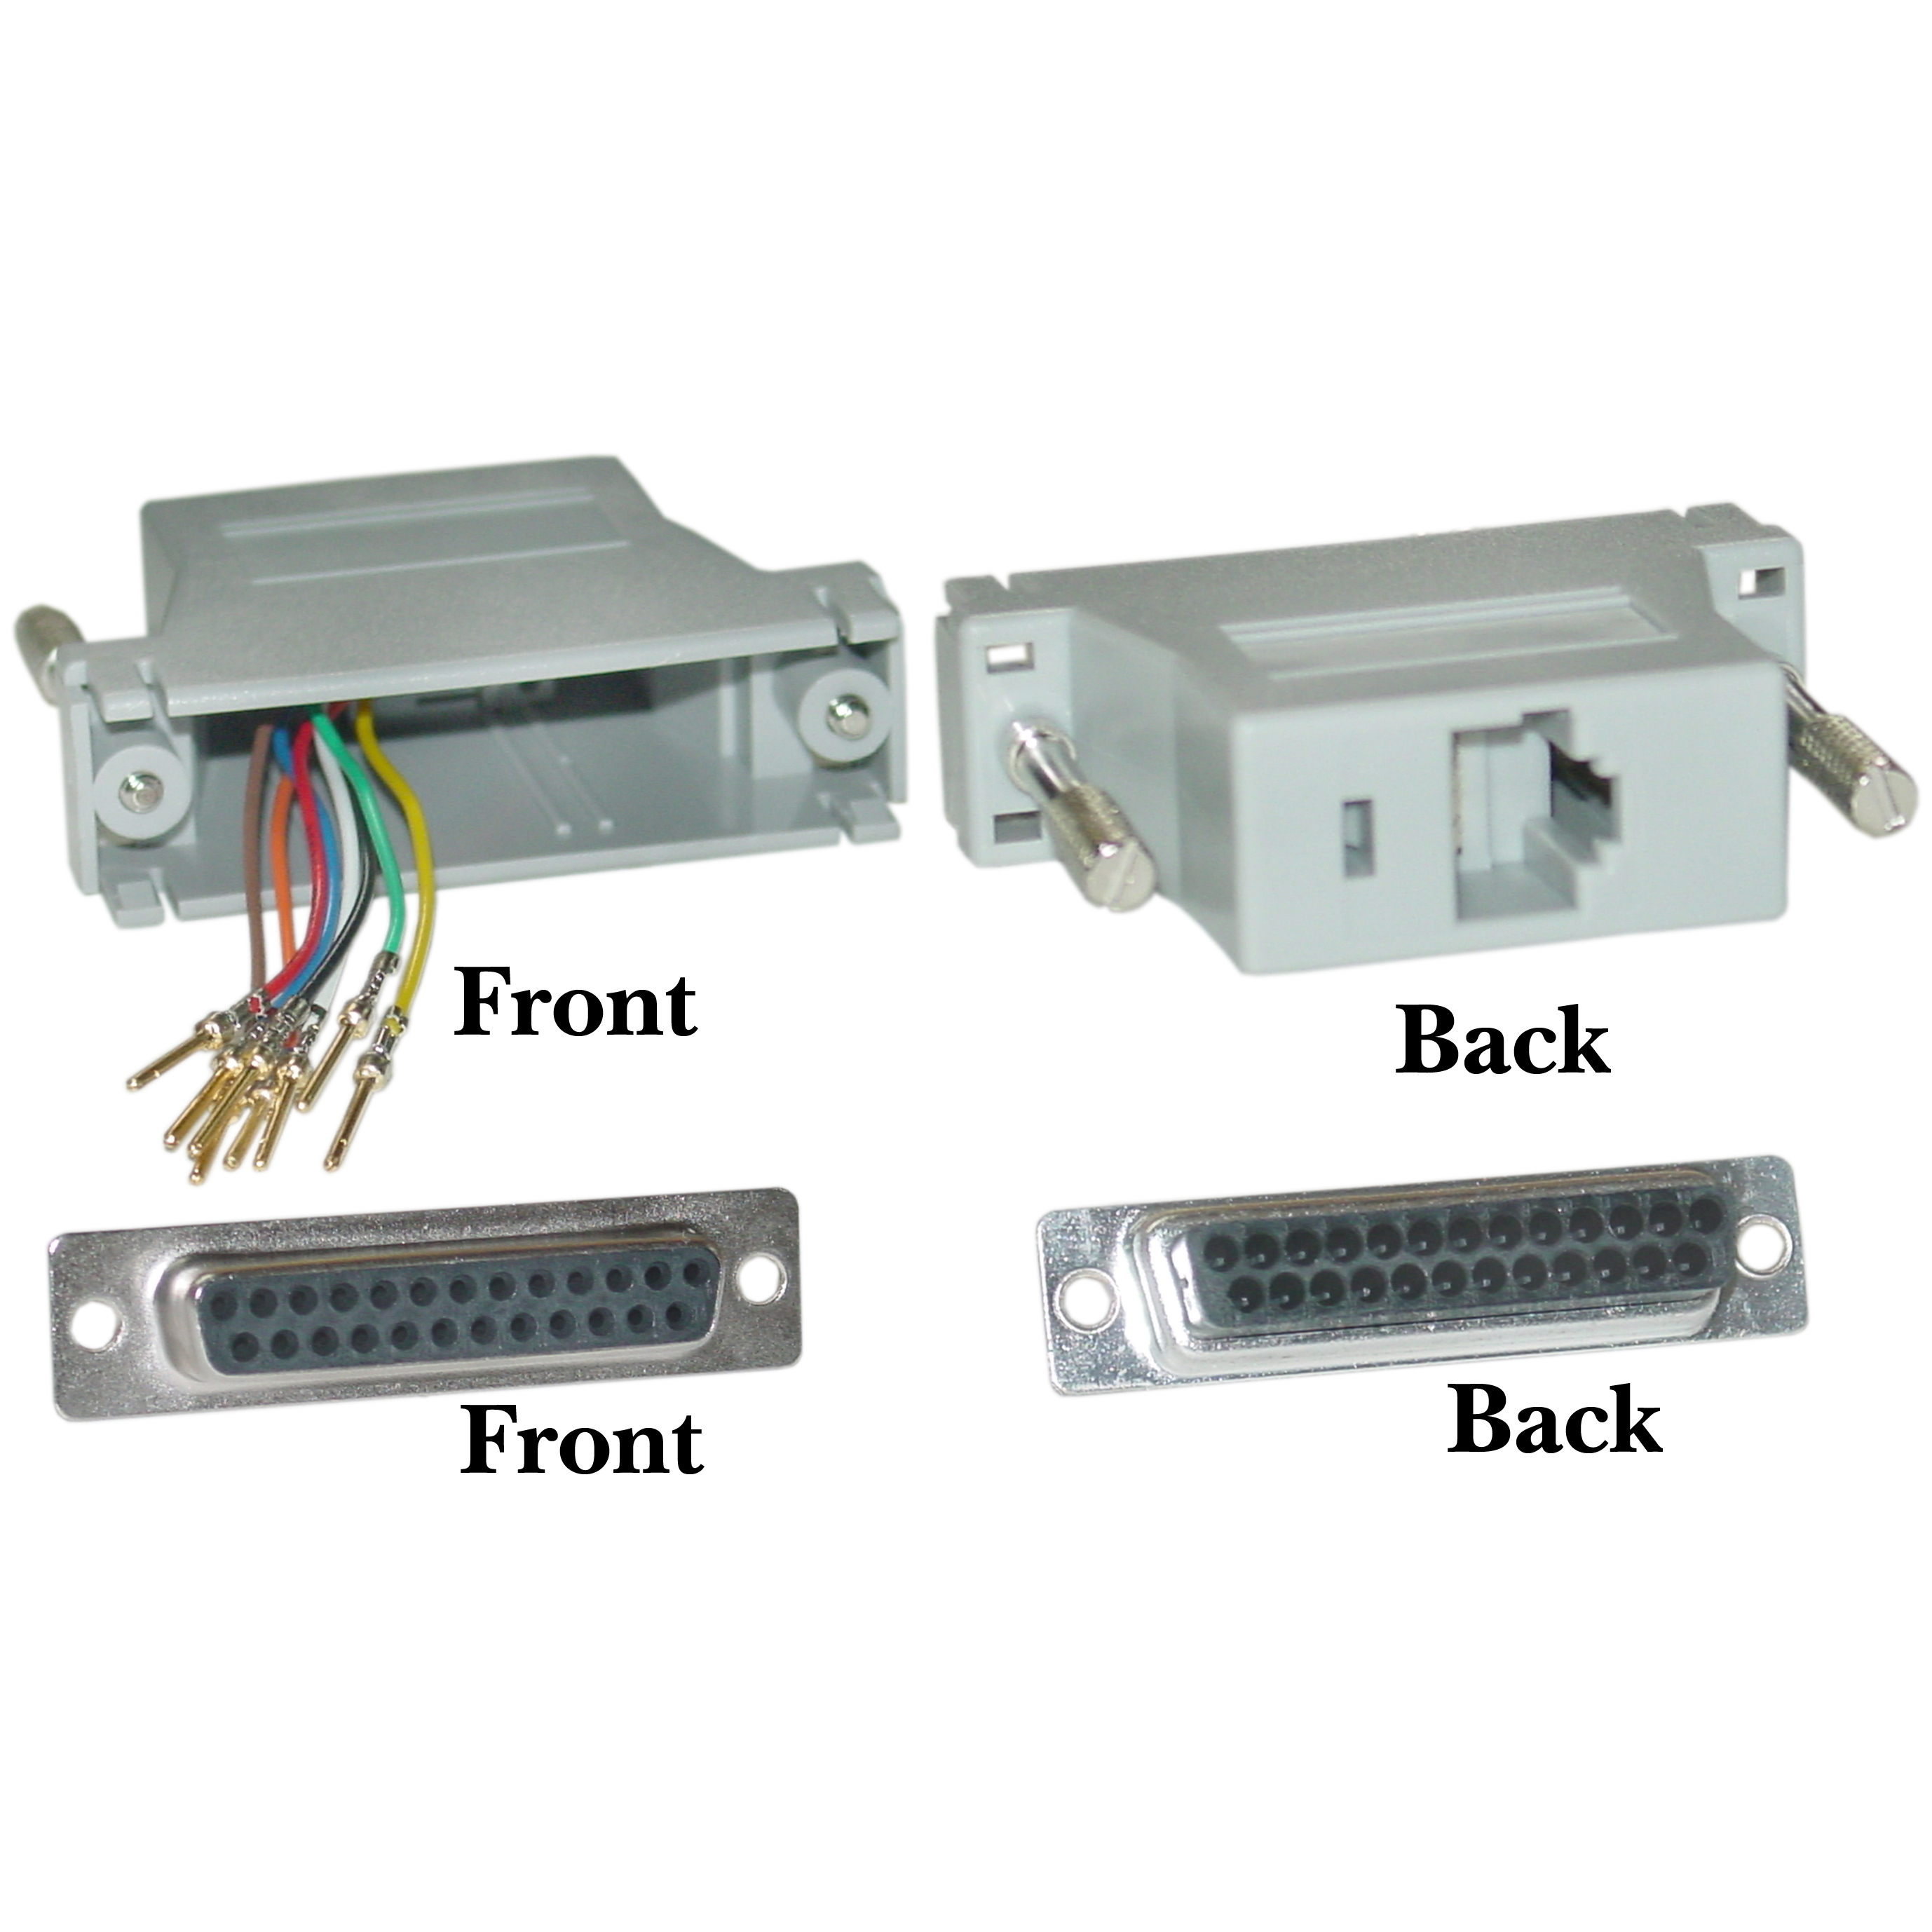 Modular Adapter, Gray, DB25 Female to RJ45 - Part Number: 31D3-37400